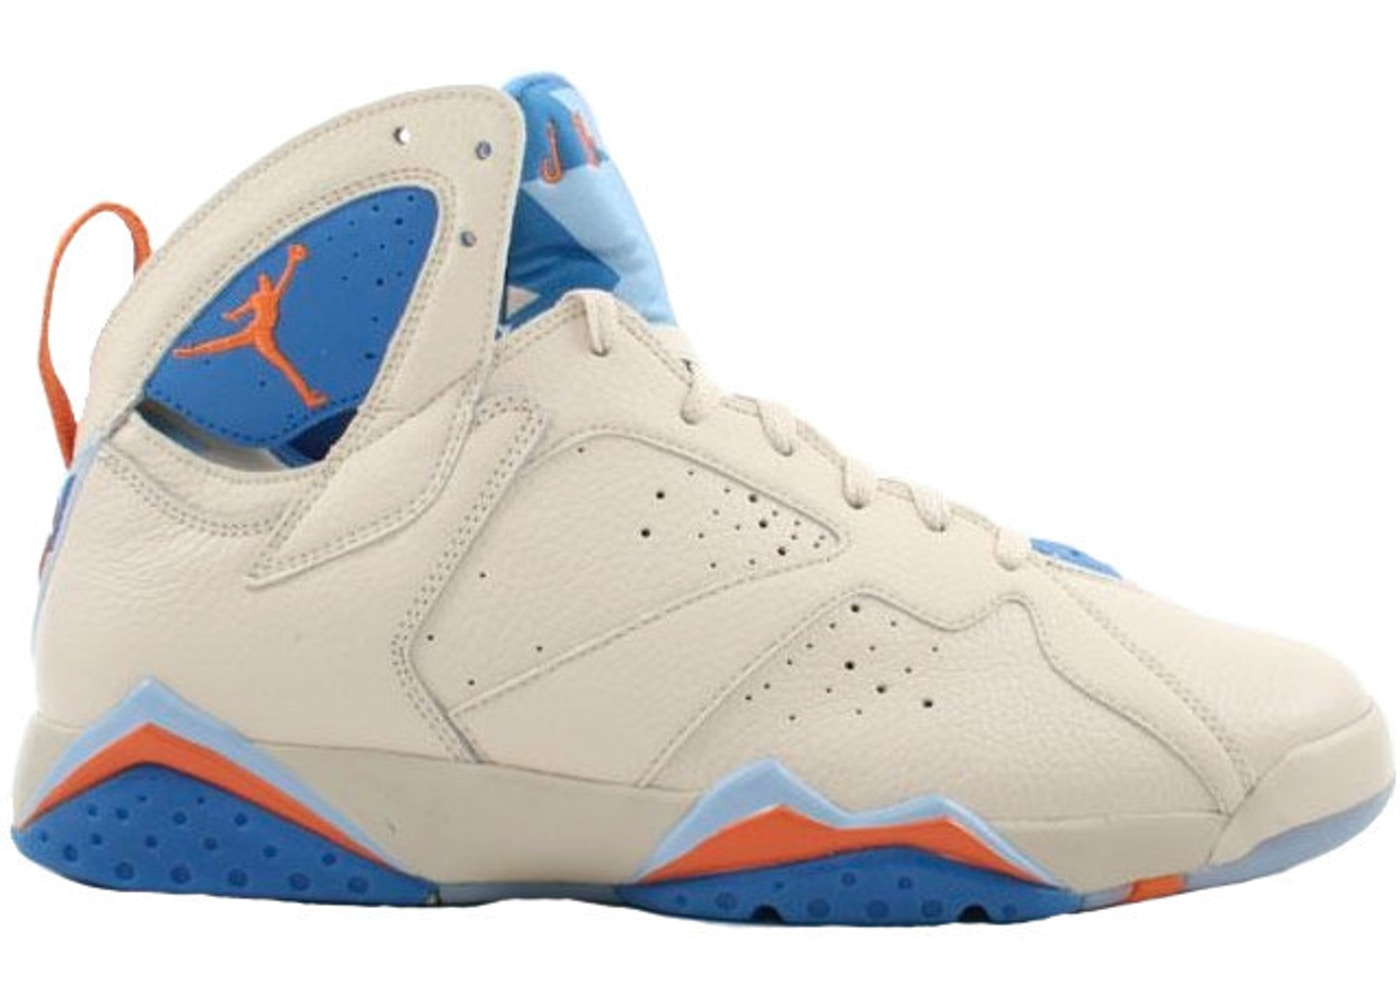 competitive price c53d6 775a8 Jordan 7 Retro Pacific Blue